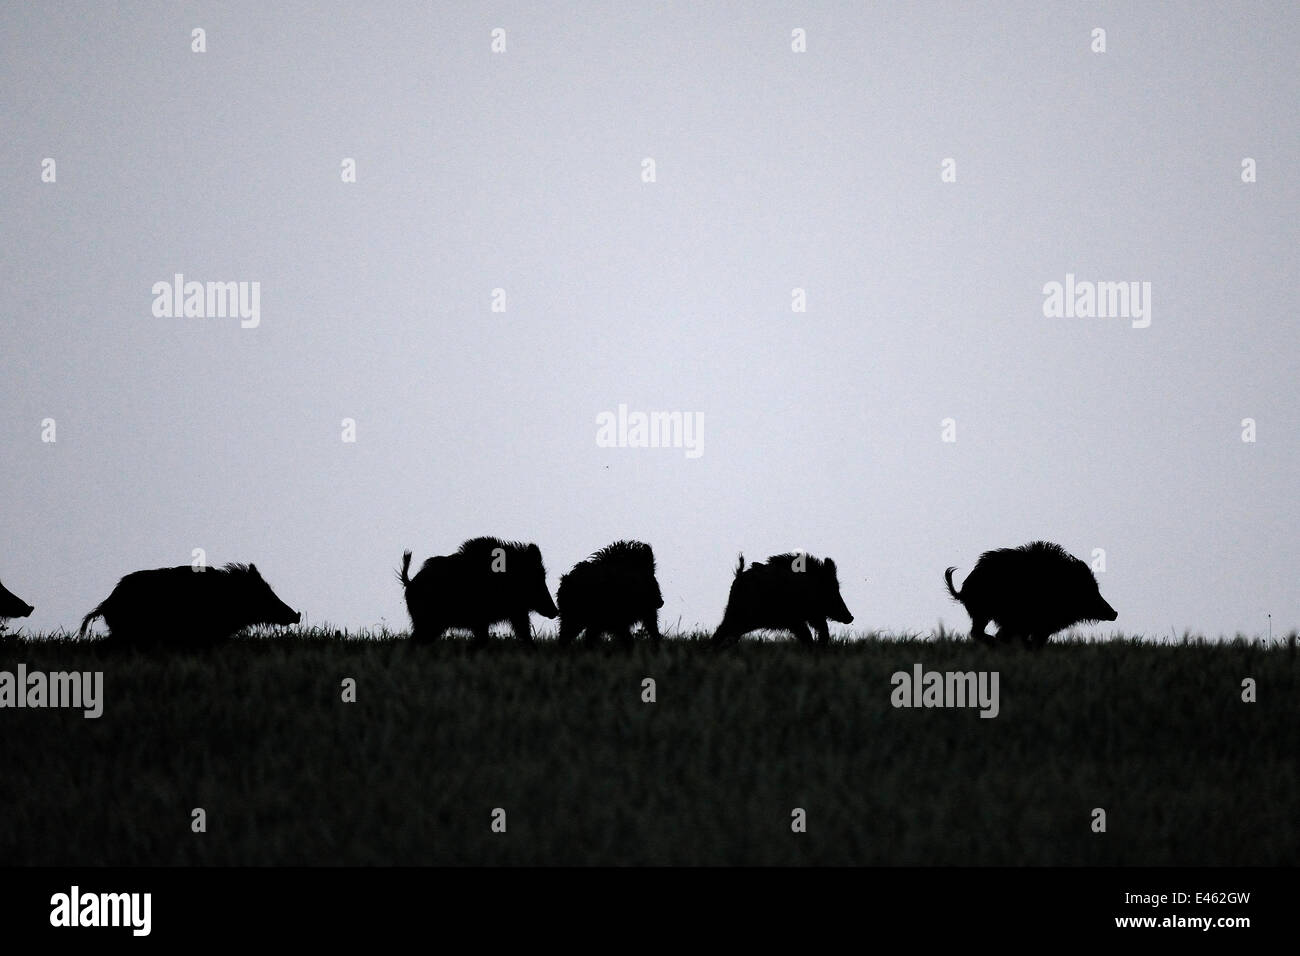 Group of Wild boar (Sus scrofa) silhouetted, Vosges, France, June - Stock Image